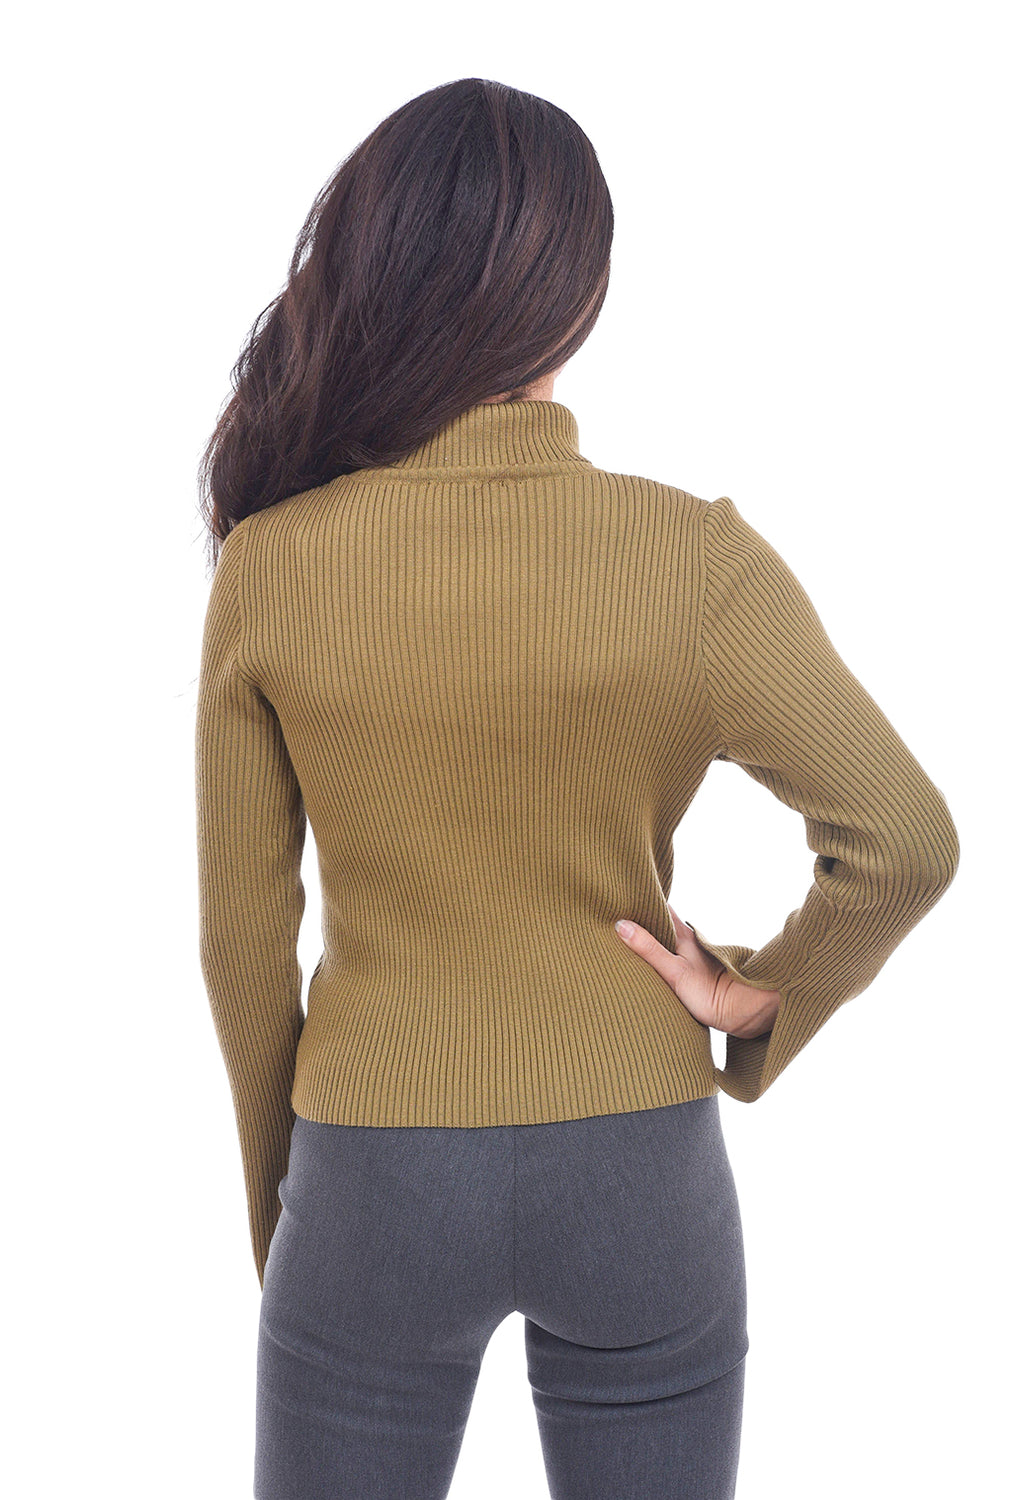 Kerisma Knits Gretchen Turtleneck, Light Olive